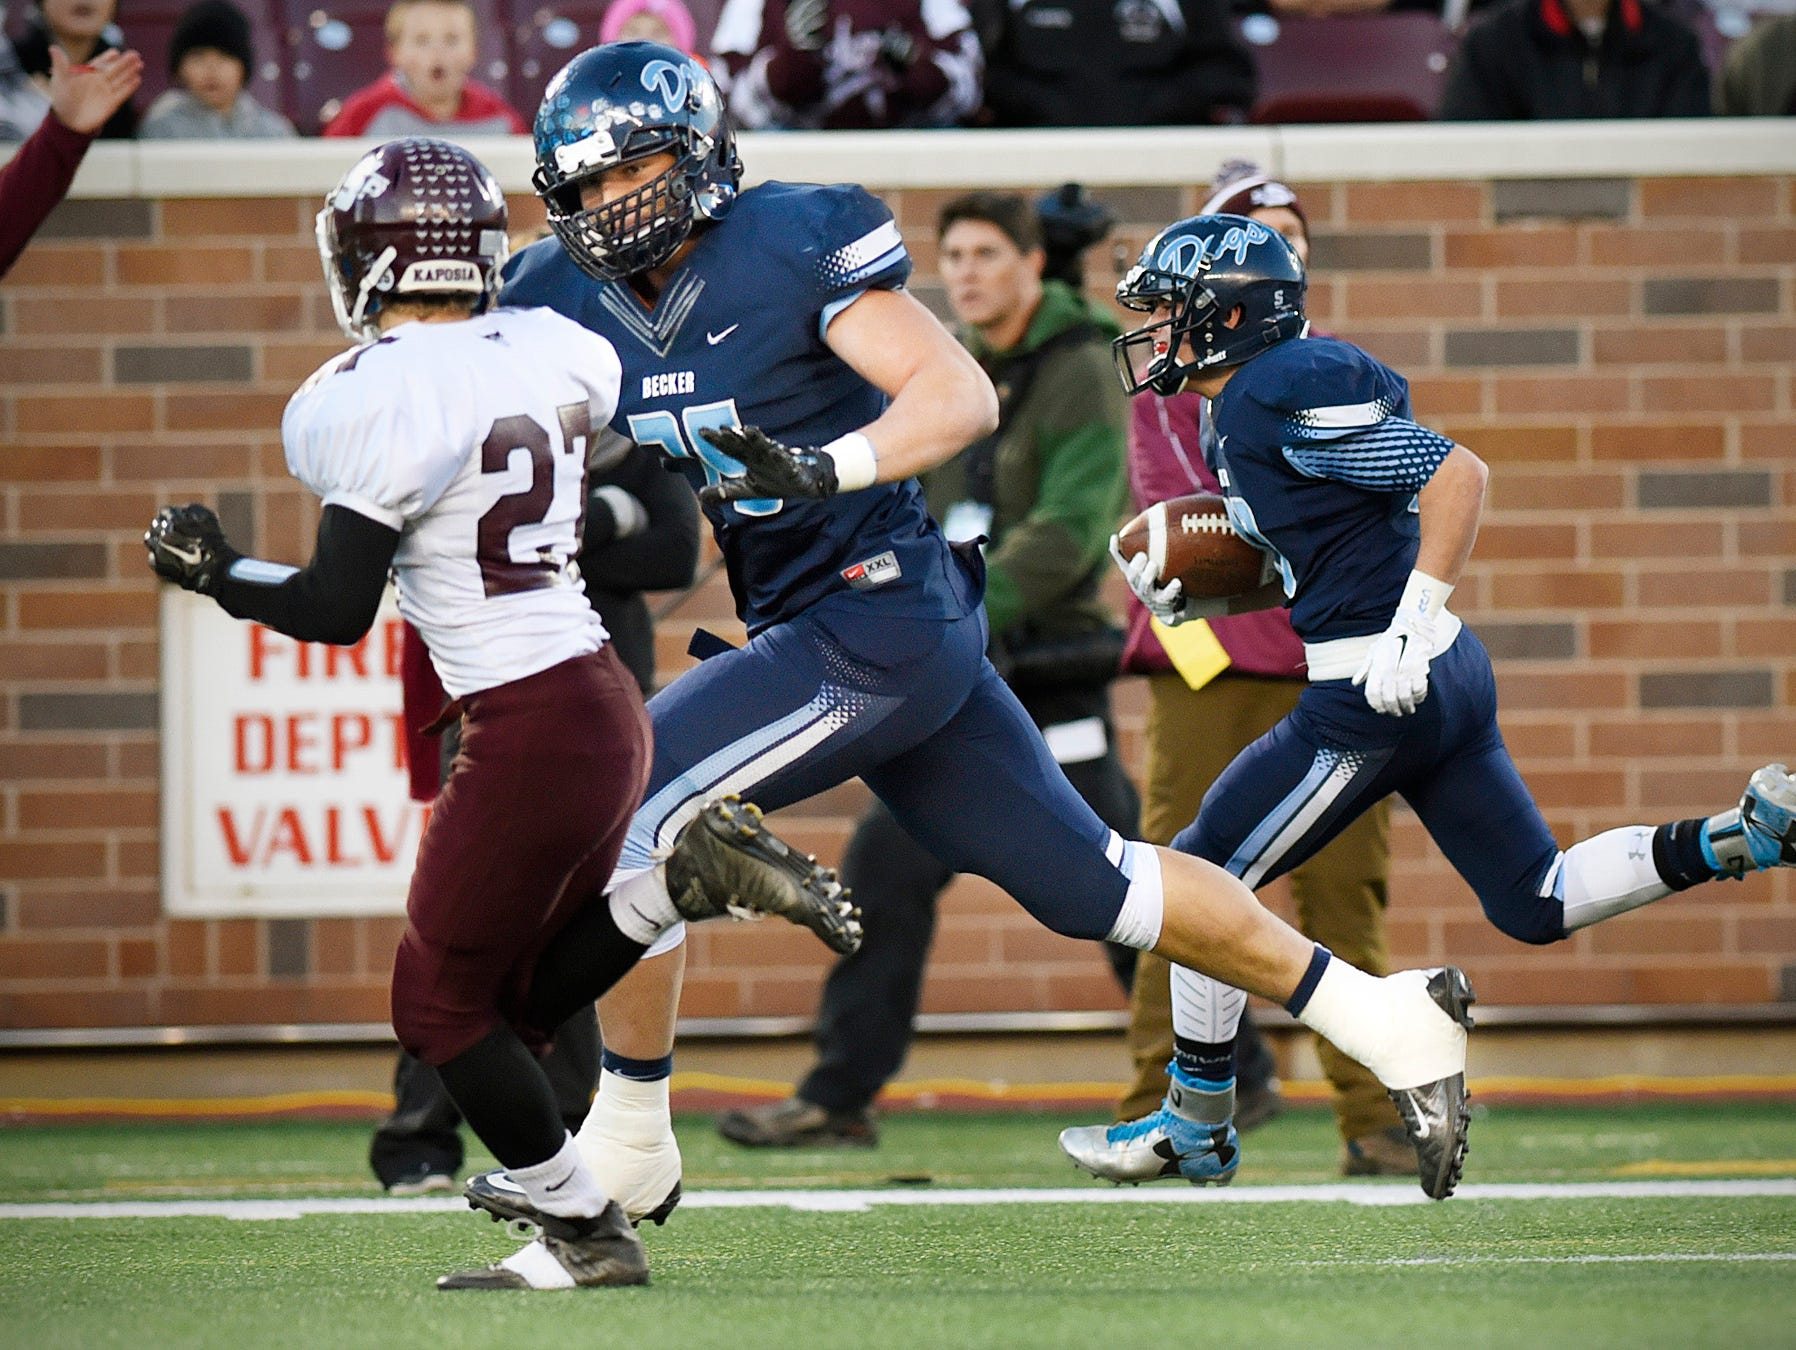 Becker's Dillon Radunz (center) make the key block to send tailback Gabe Dertinger in to score against South St. Paul in the first half of the Nov. 13 Class 4A state title game at TCF Bank Stadium in Minneapolis.